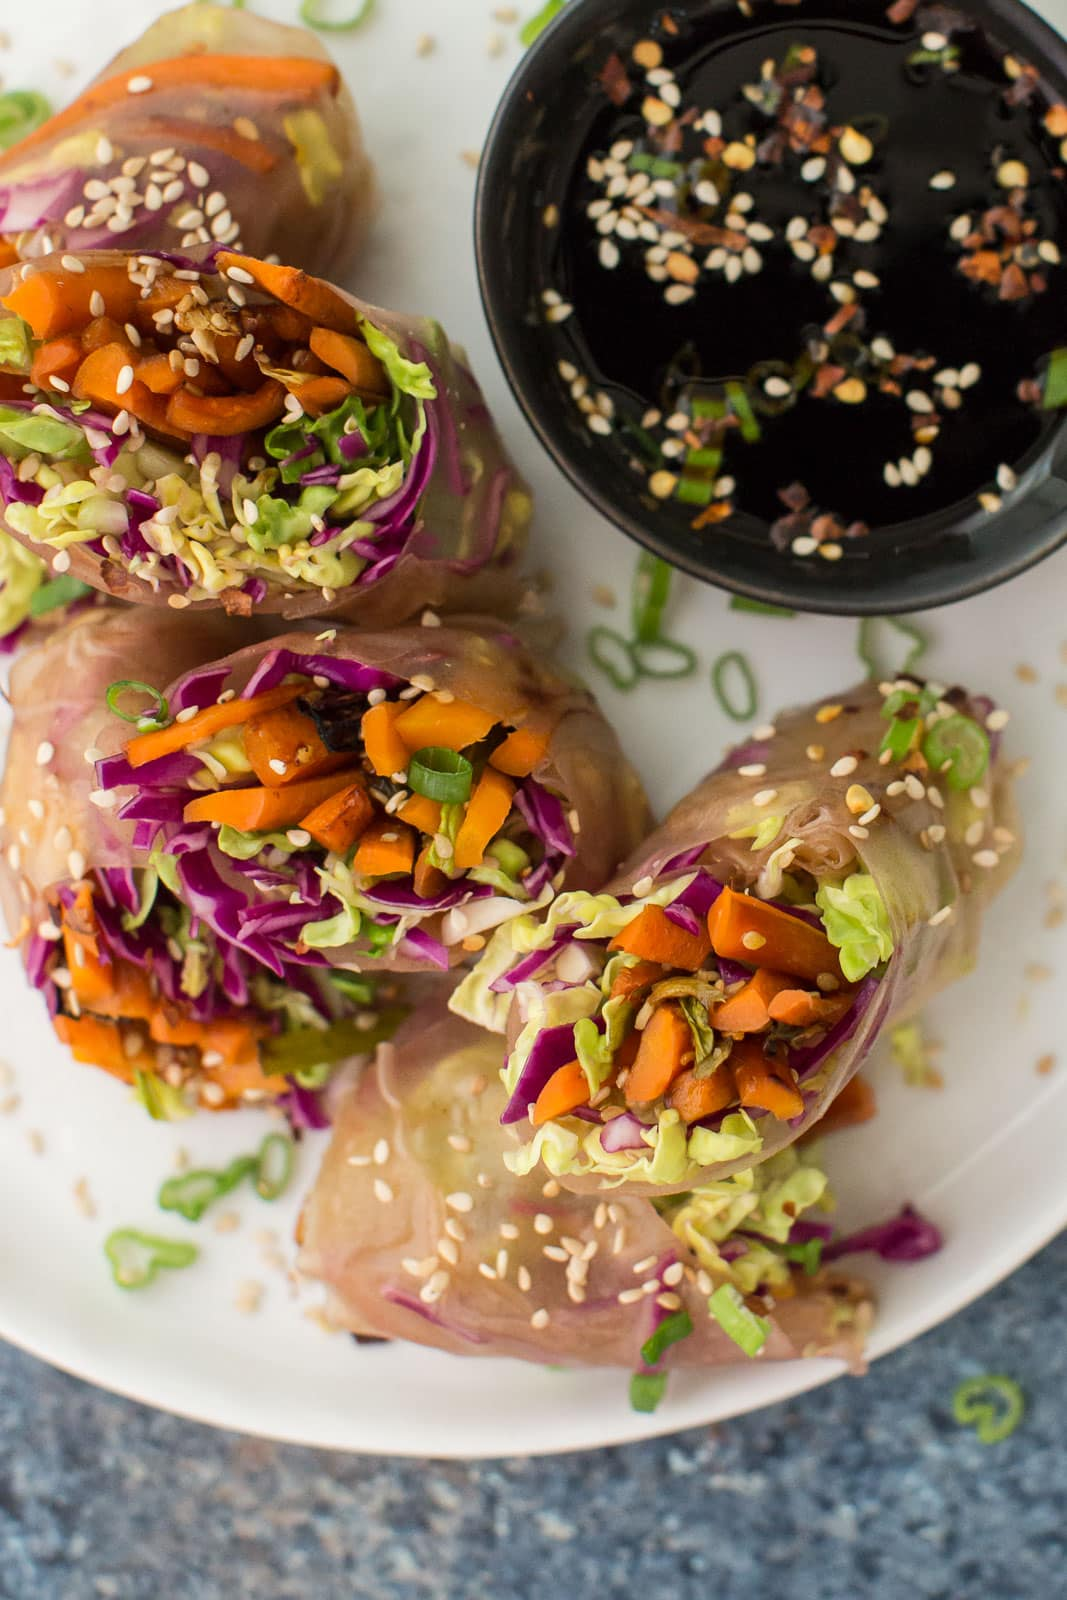 Summer Rolls With Roasted Carrots And Cabbage